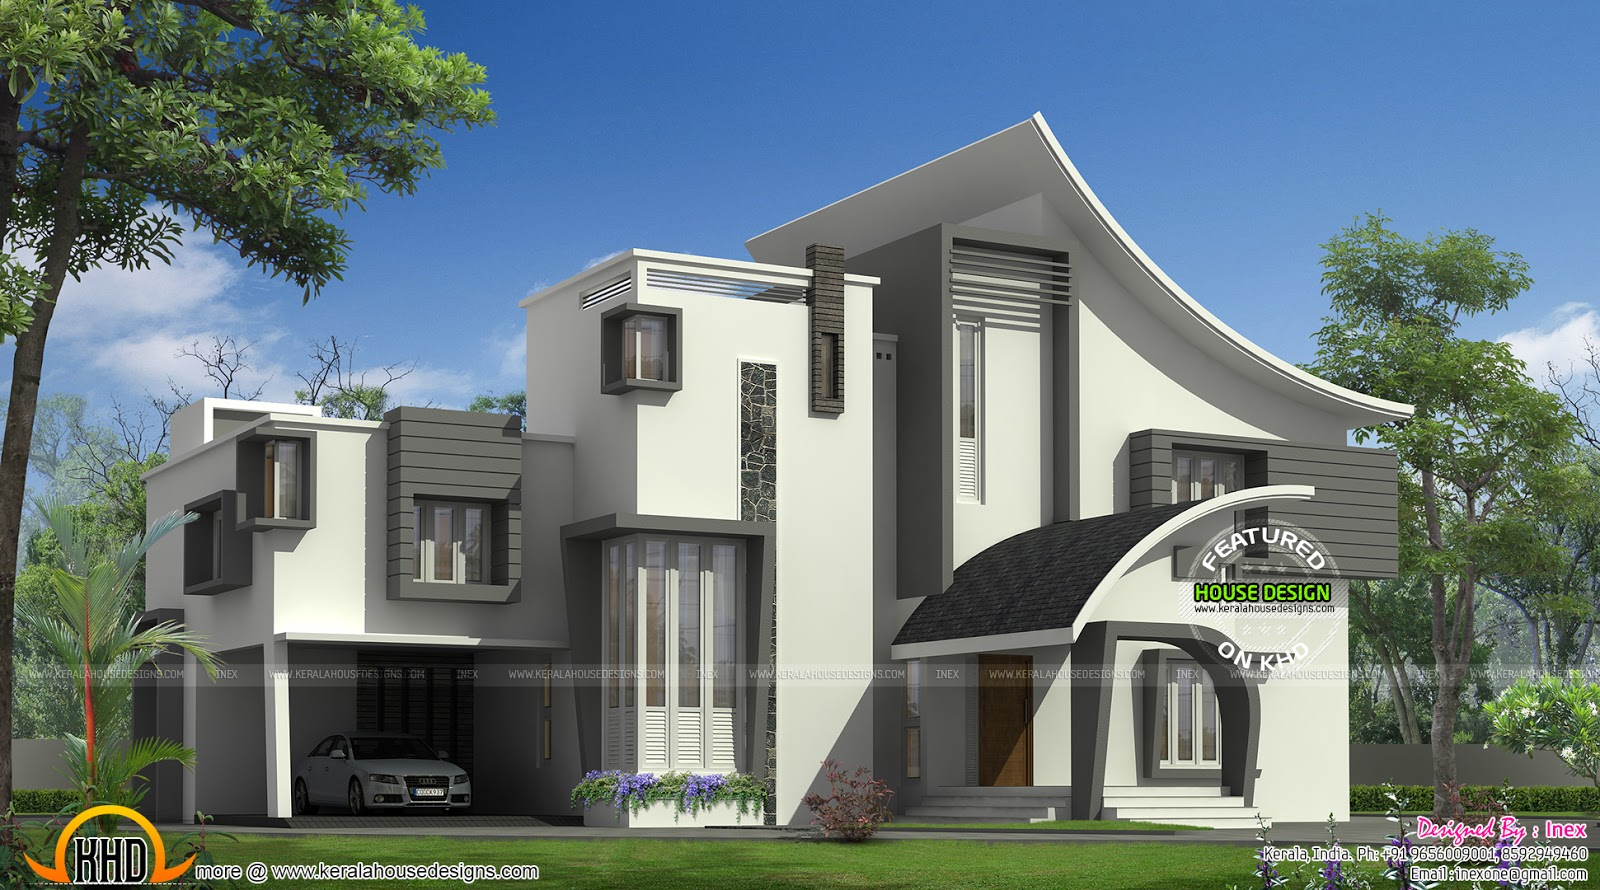 Ultra modern luxury home in kerala kerala home design for Modern luxury house plans and designs